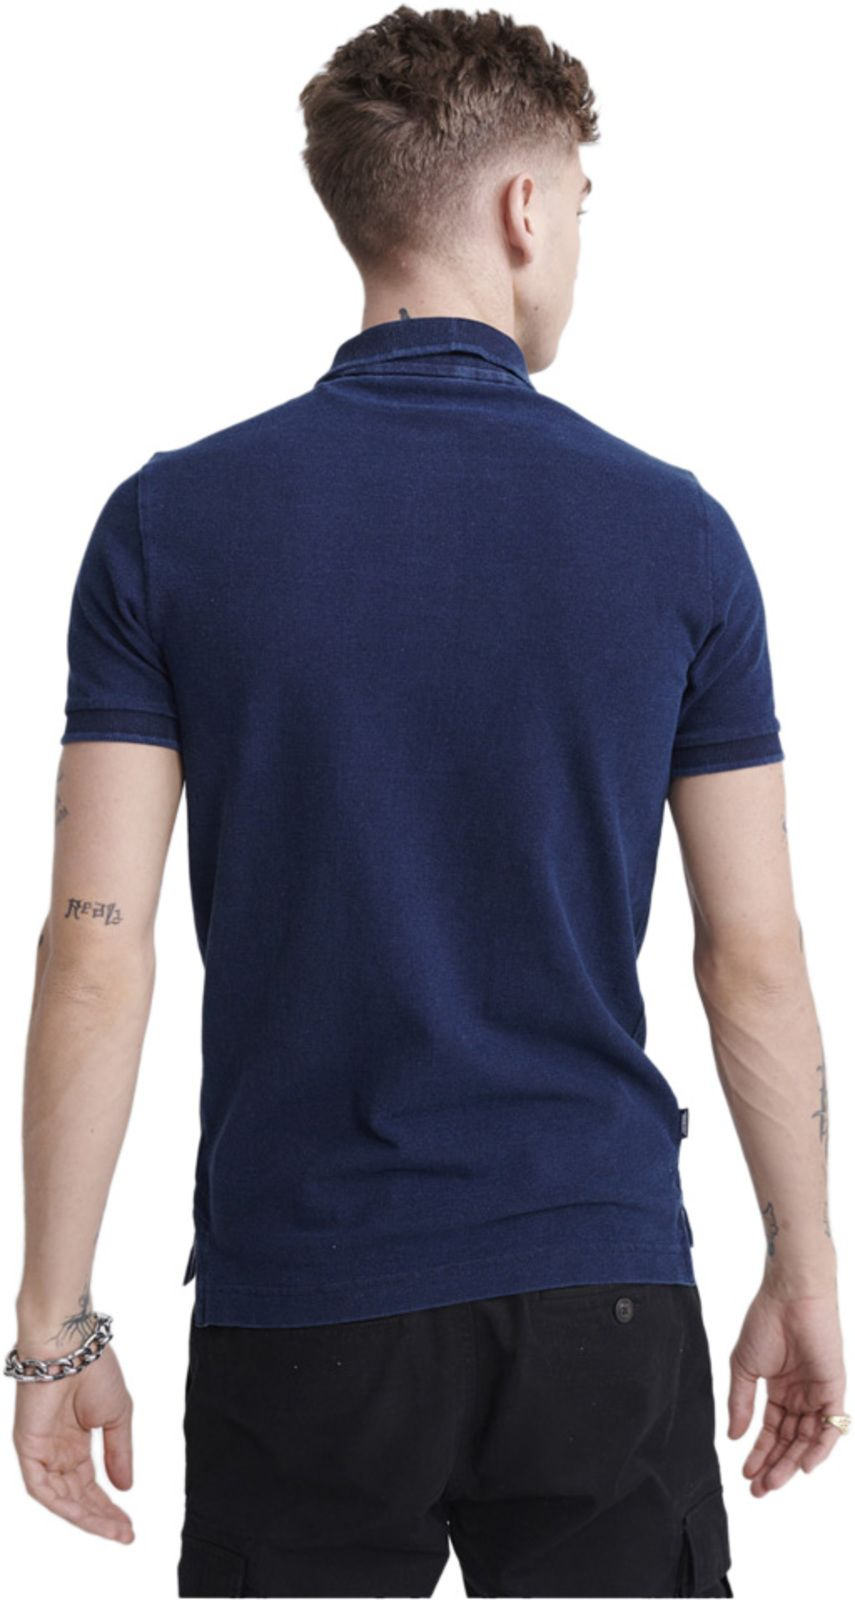 Superdry-Polo-Shirts-Classic-Pique-Short-Sleeve-Tops-Assorted-Colours thumbnail 17